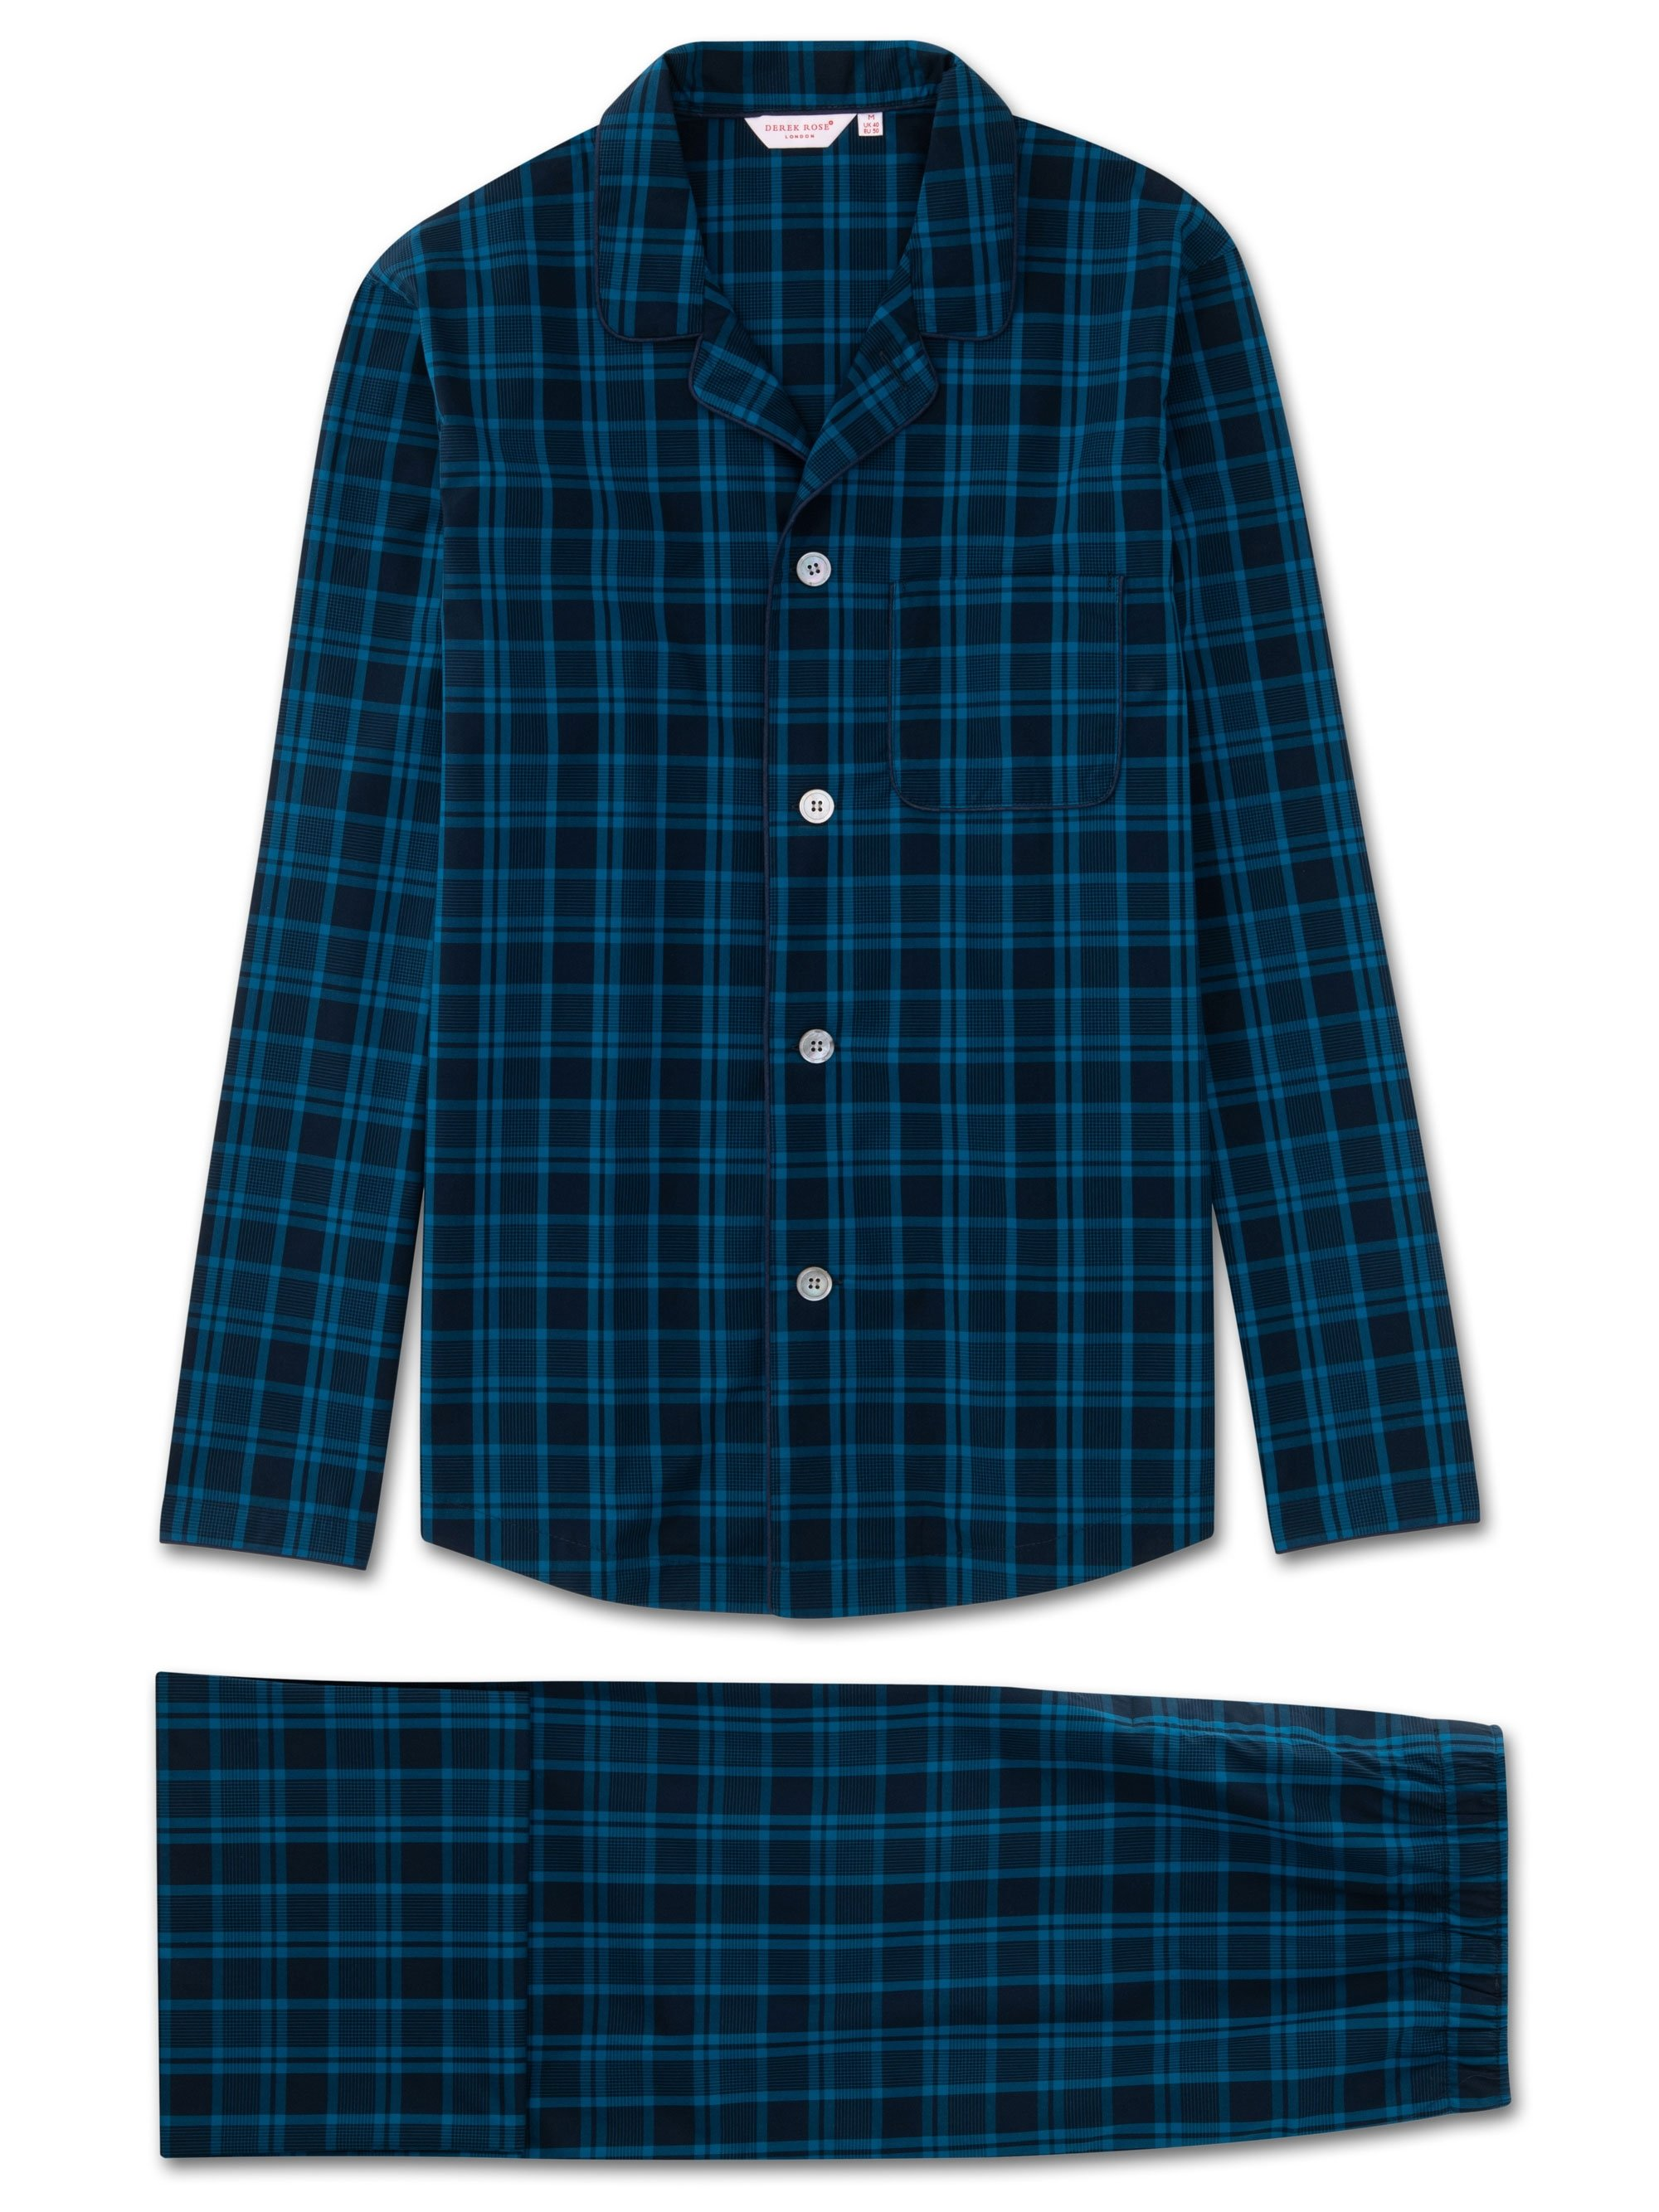 Men's Modern Fit Pyjamas Barker 24 Cotton Check Navy